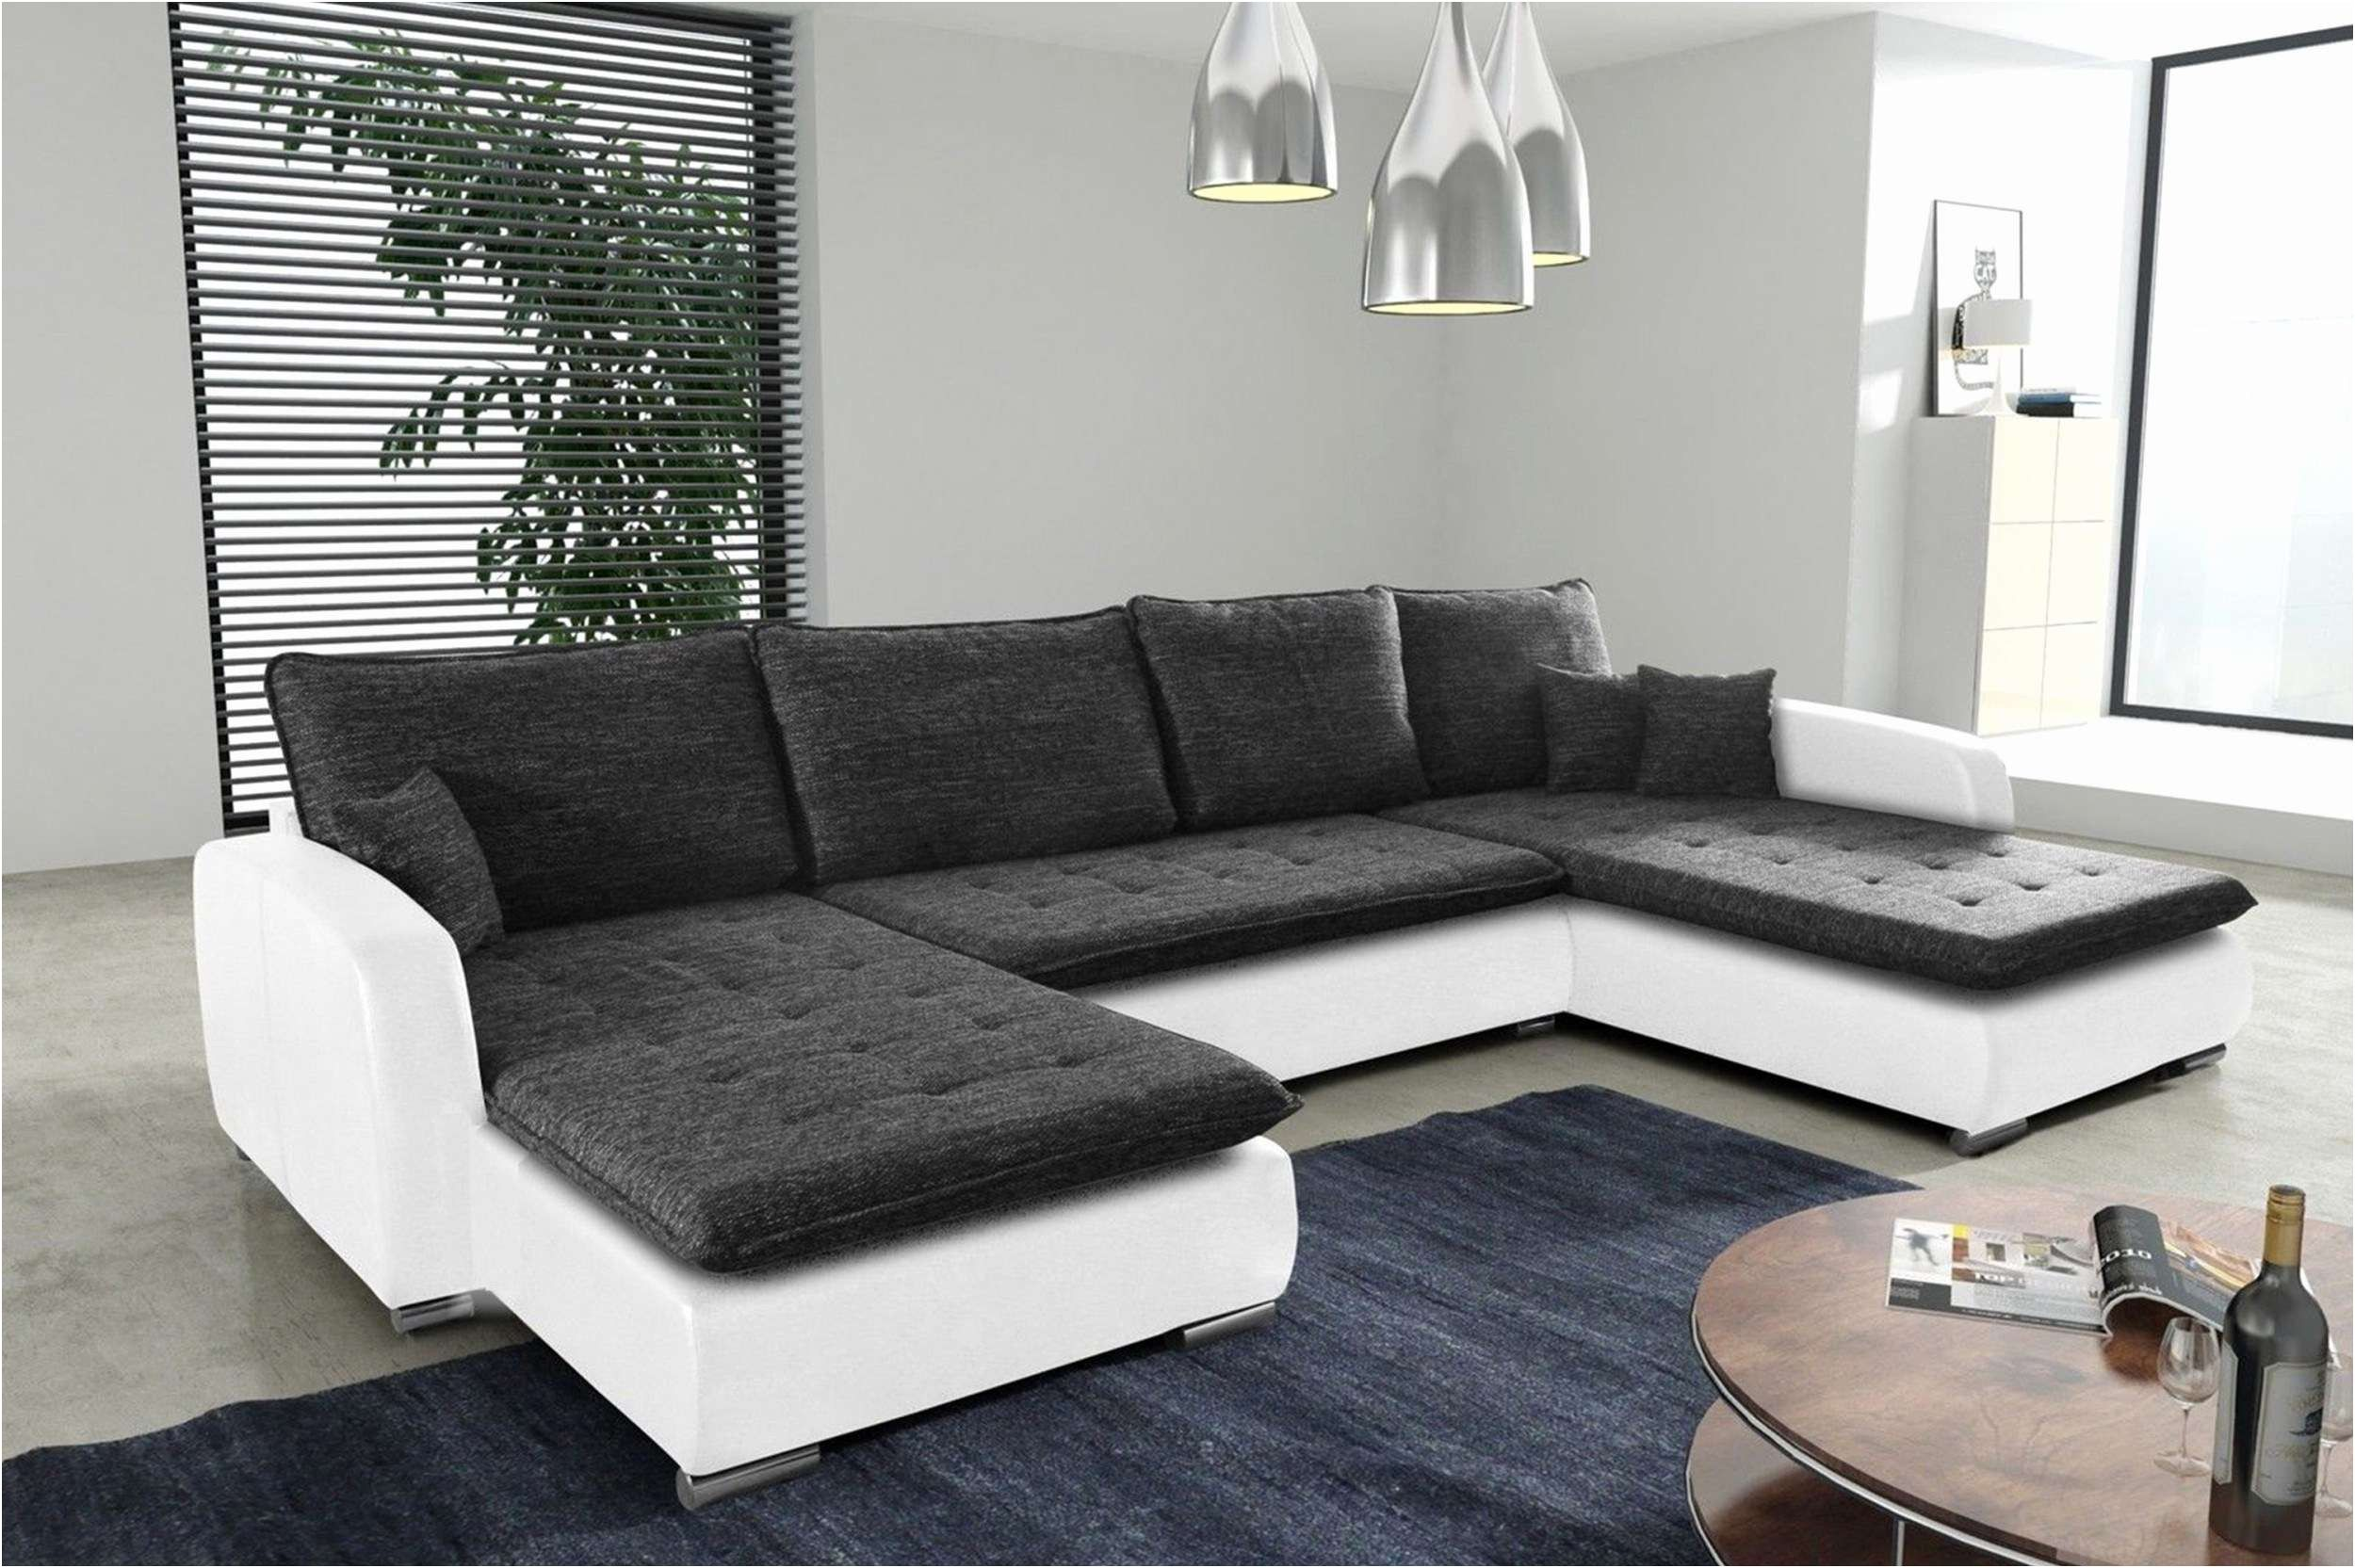 Liebenswurdig Kleines Sofa Grau In 2020 Home Decor Couch Home